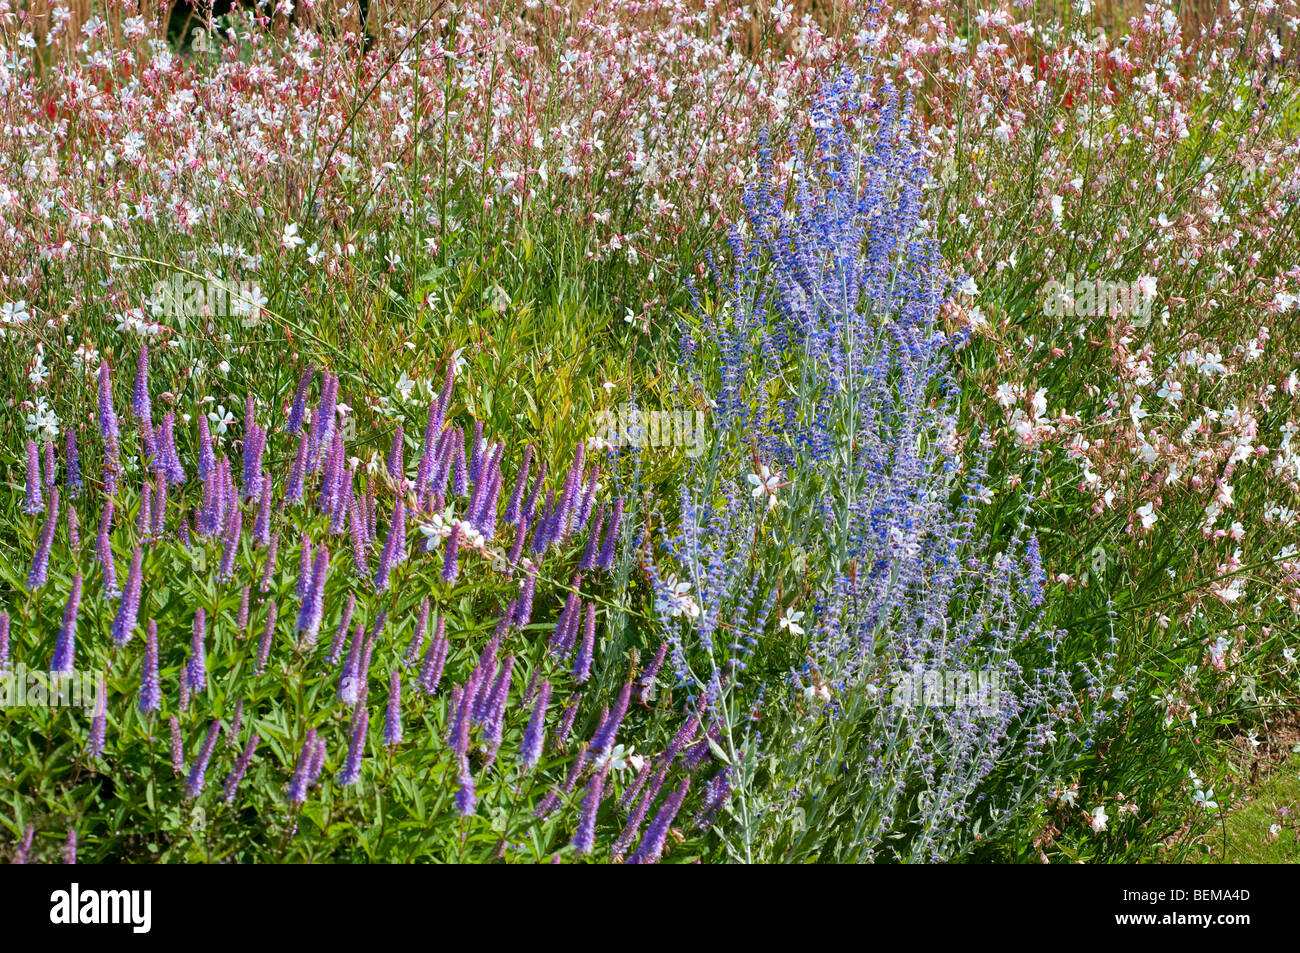 Veronicastrum ADORATION, Perovskia atriplicifolia LITTLE SPIRE and Gaura lindheimeri WHIRLING BUTTERFLIES - Stock Image